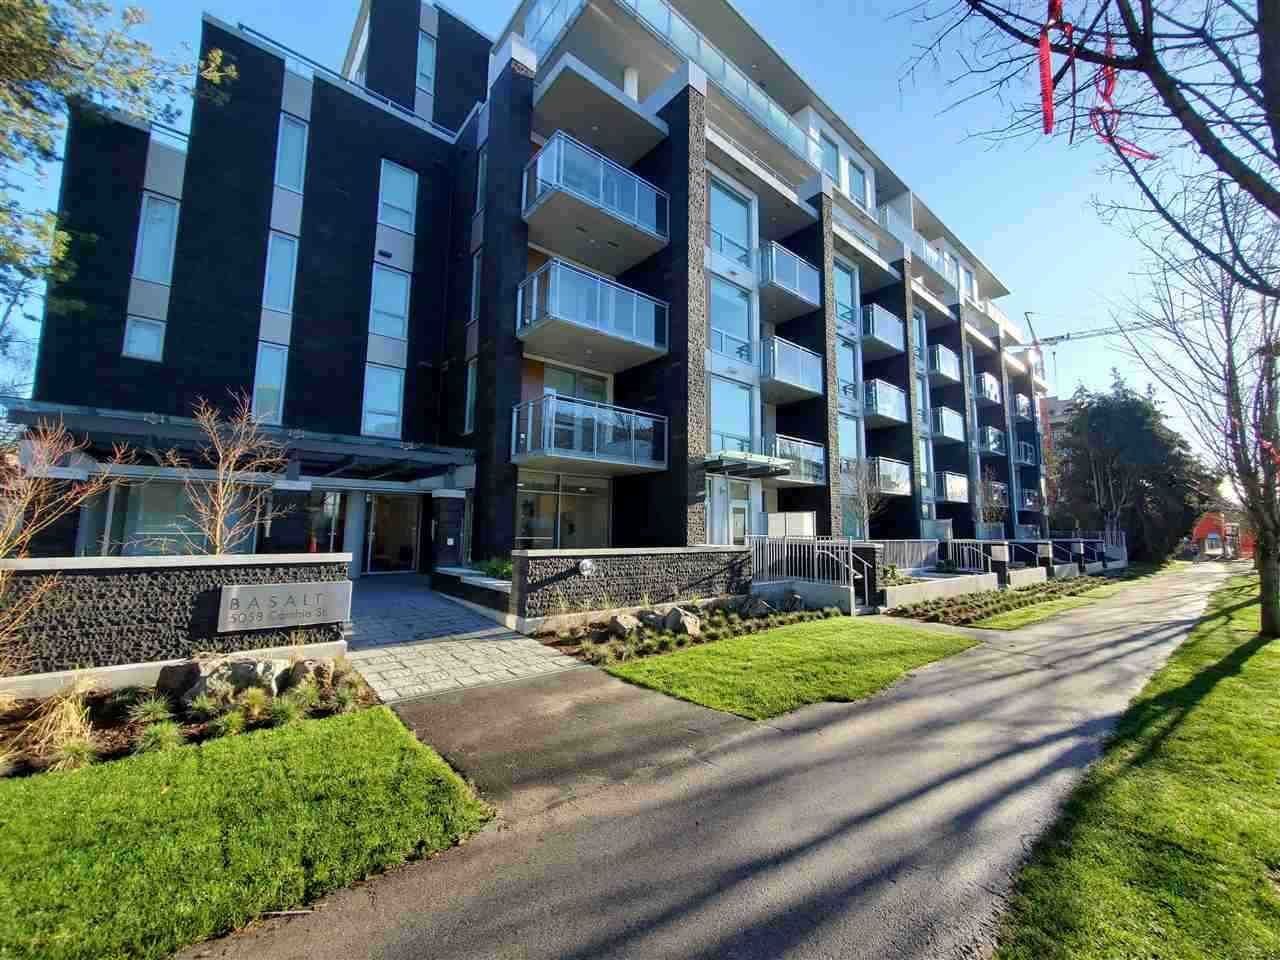 "Main Photo: 205 5058 CAMBIE Street in Vancouver: Cambie Condo for sale in ""BASALT By Pennyfarthing Homes"" (Vancouver West)  : MLS®# R2562117"